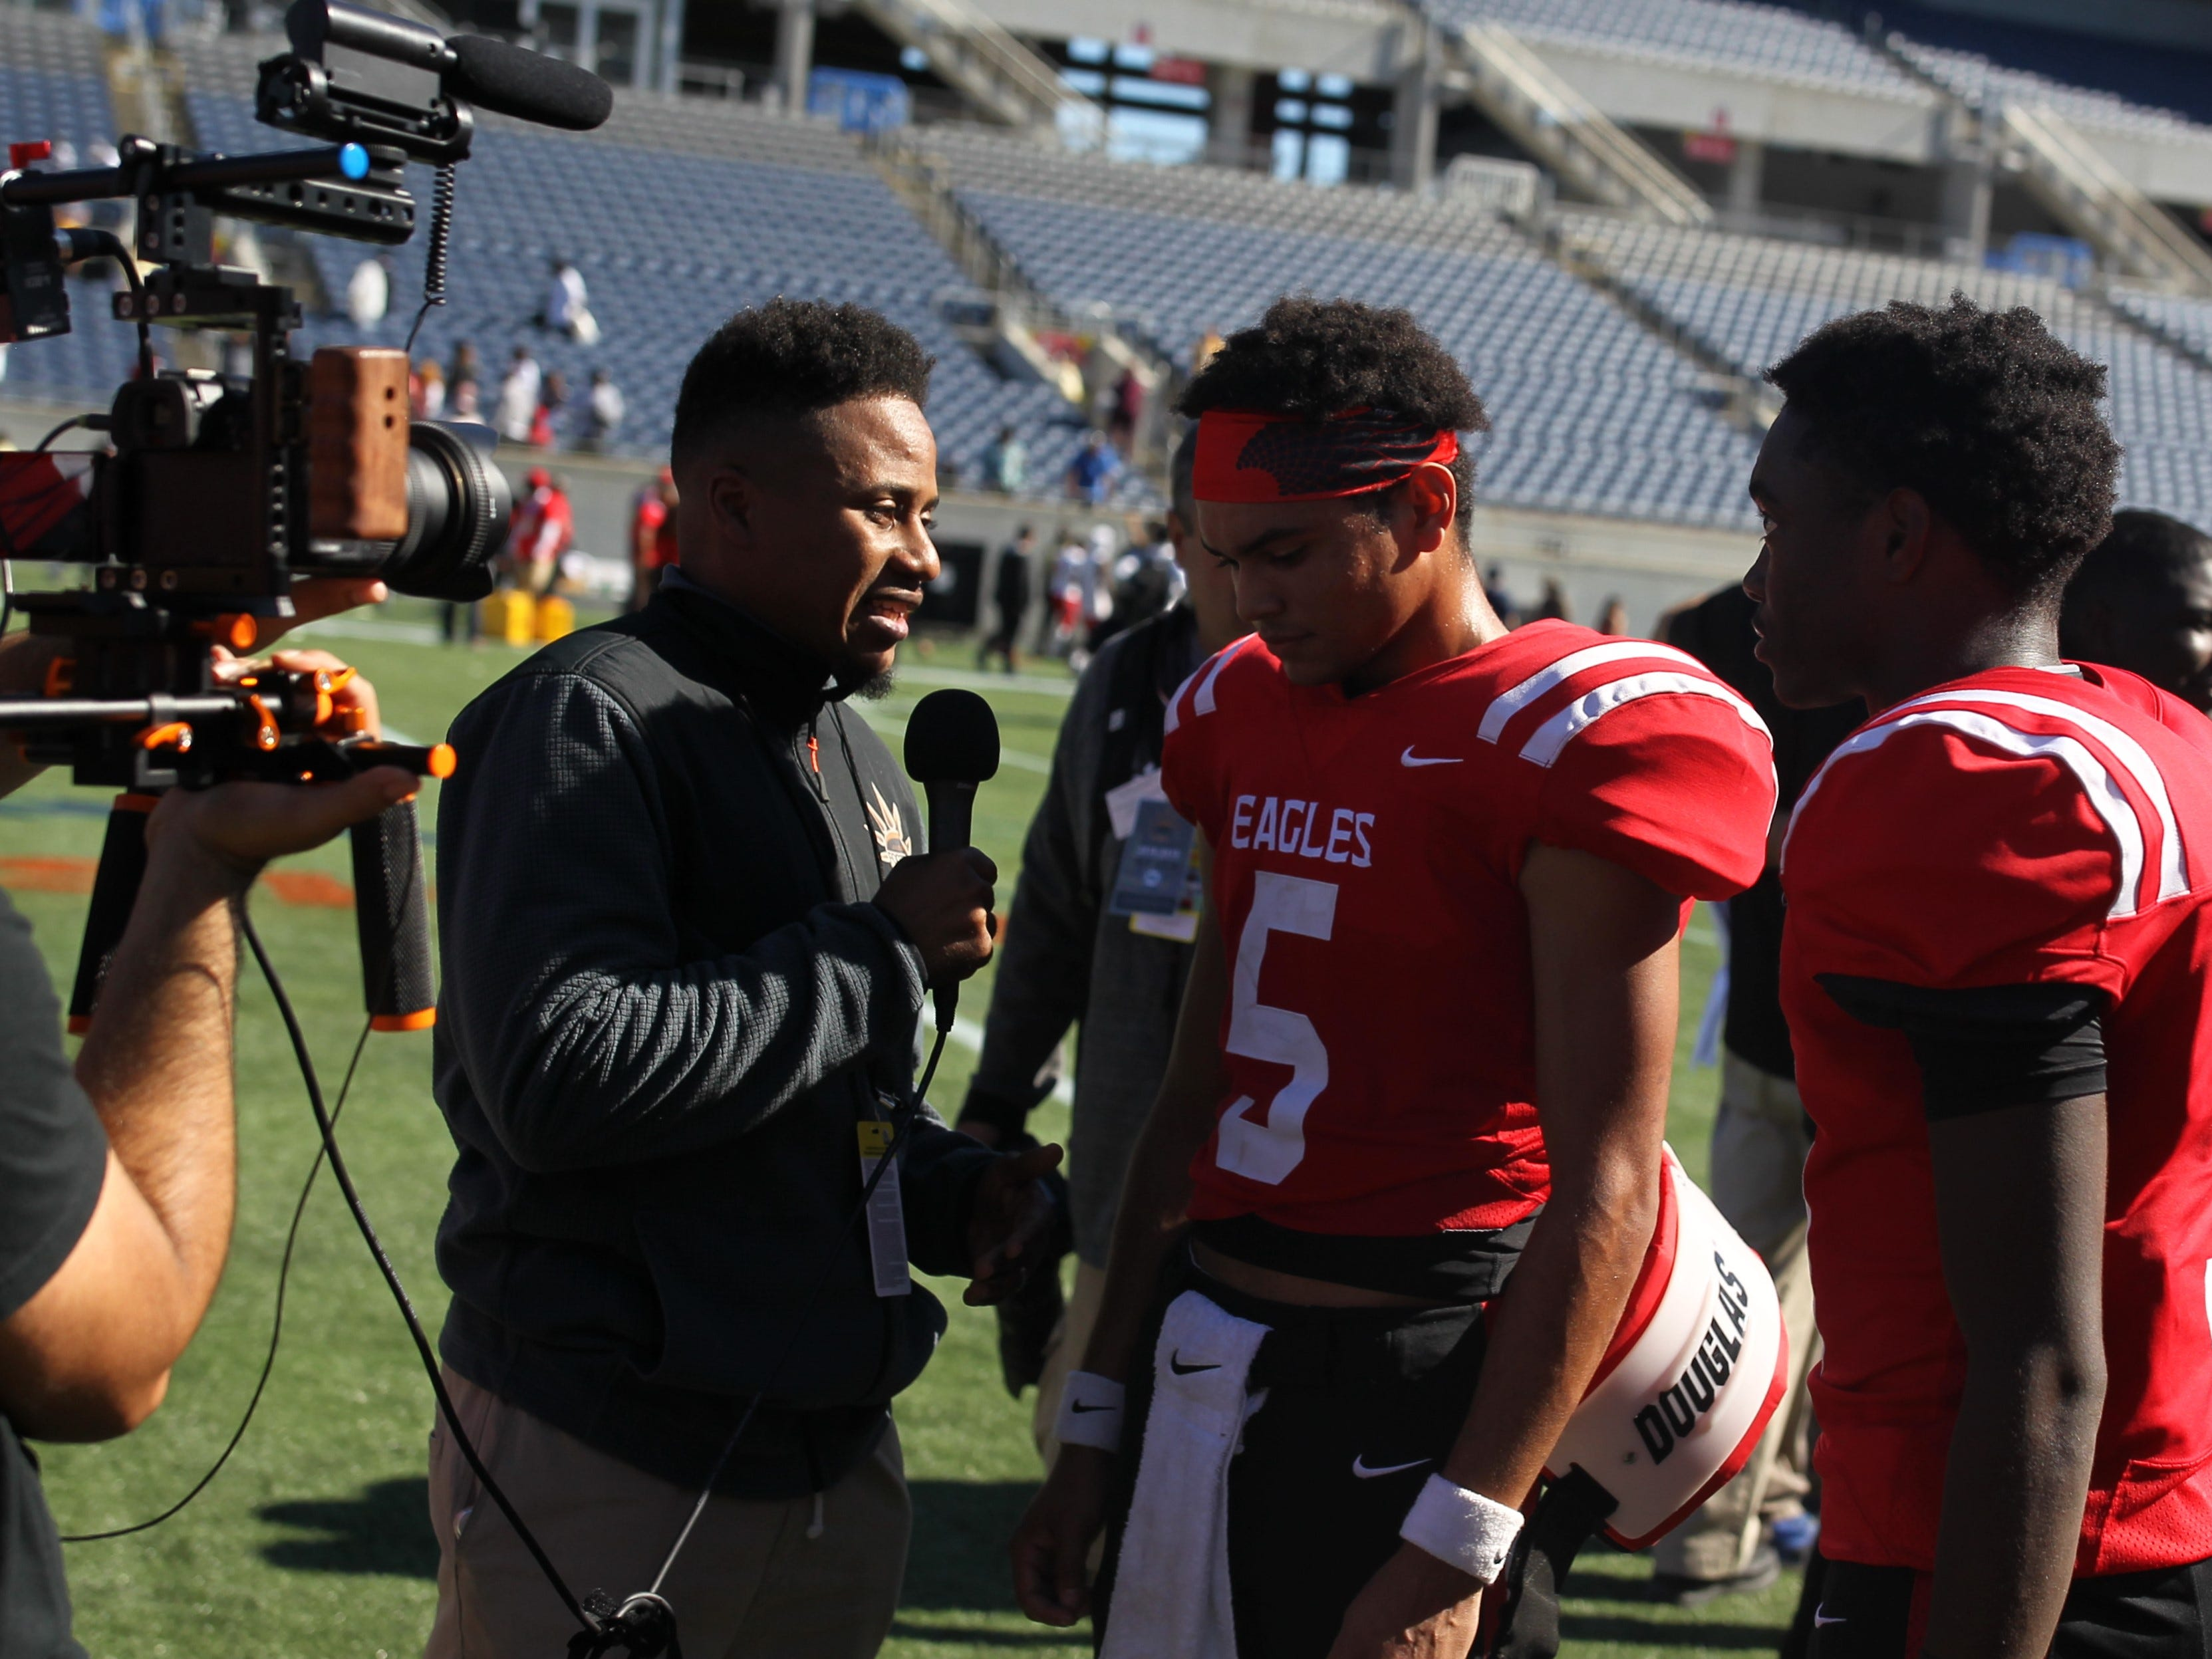 J.D. Jerry gets interviewed after NFC beat Champagnat Catholic 28-20 to win a Class 2A state championship on Friday, Dec. 7, 2018, at Orlando's Camping World Stadium.